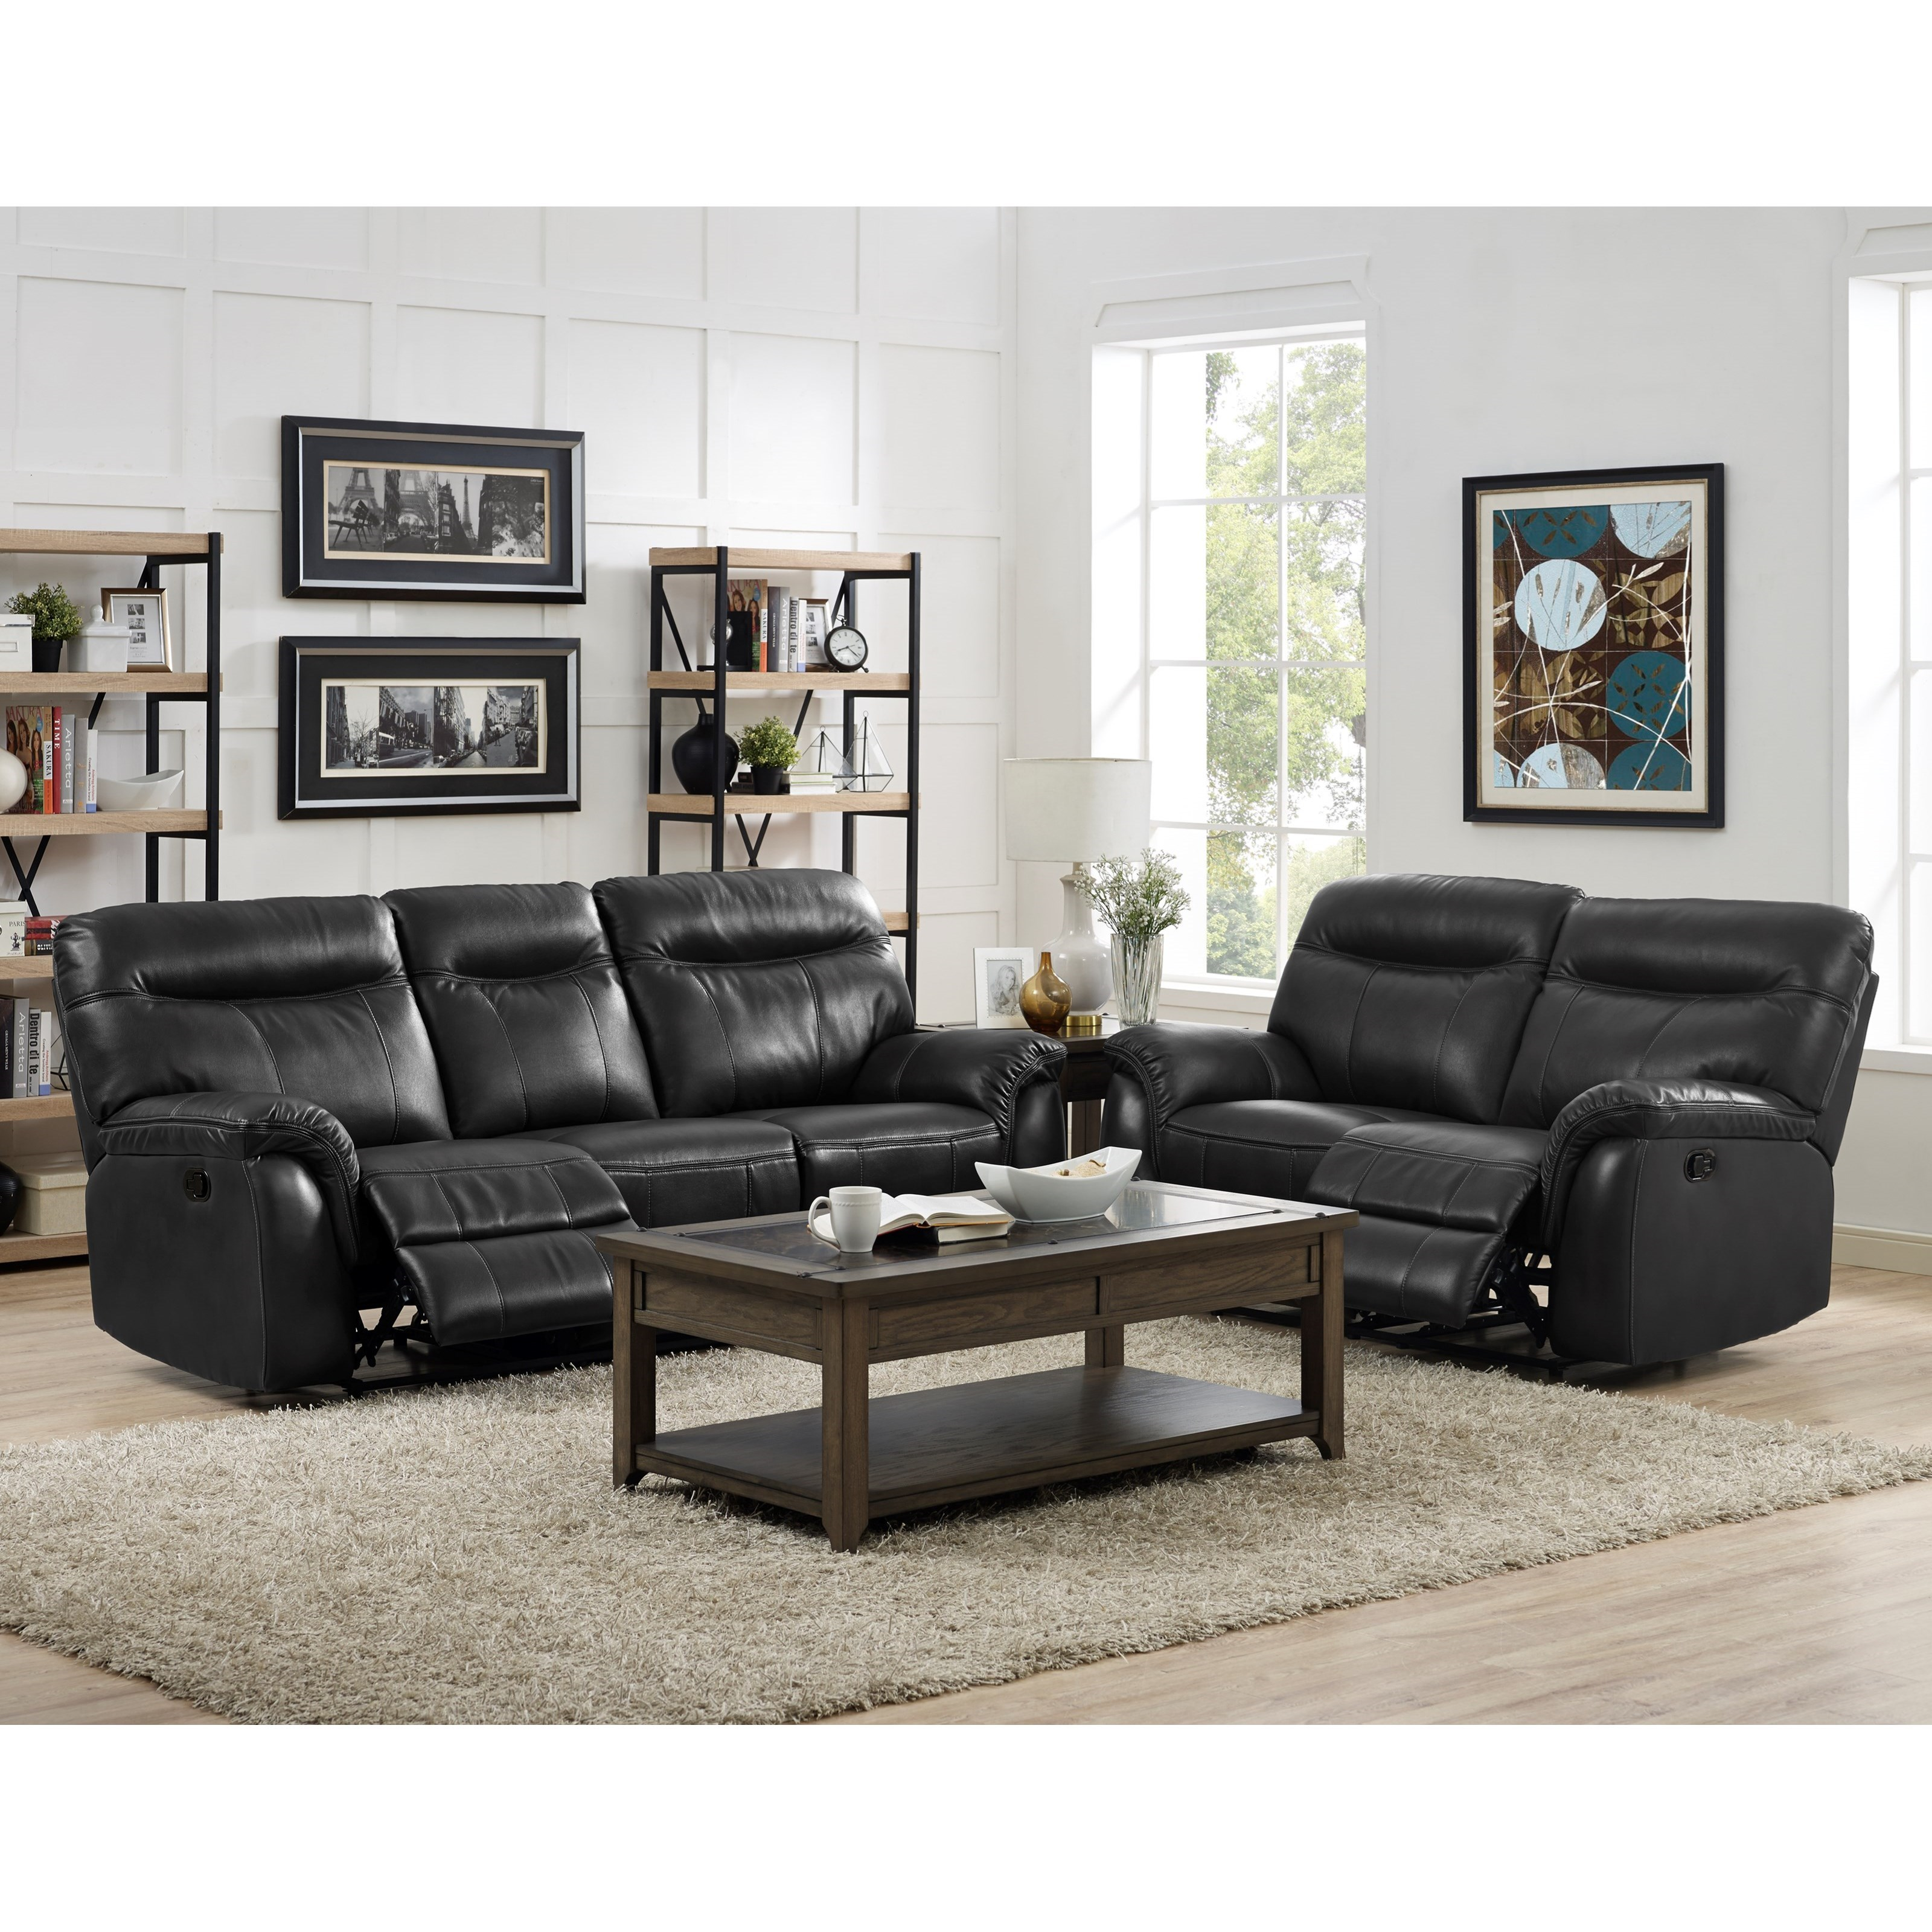 New classic atlas power reclining living room group del for Living room furniture groups